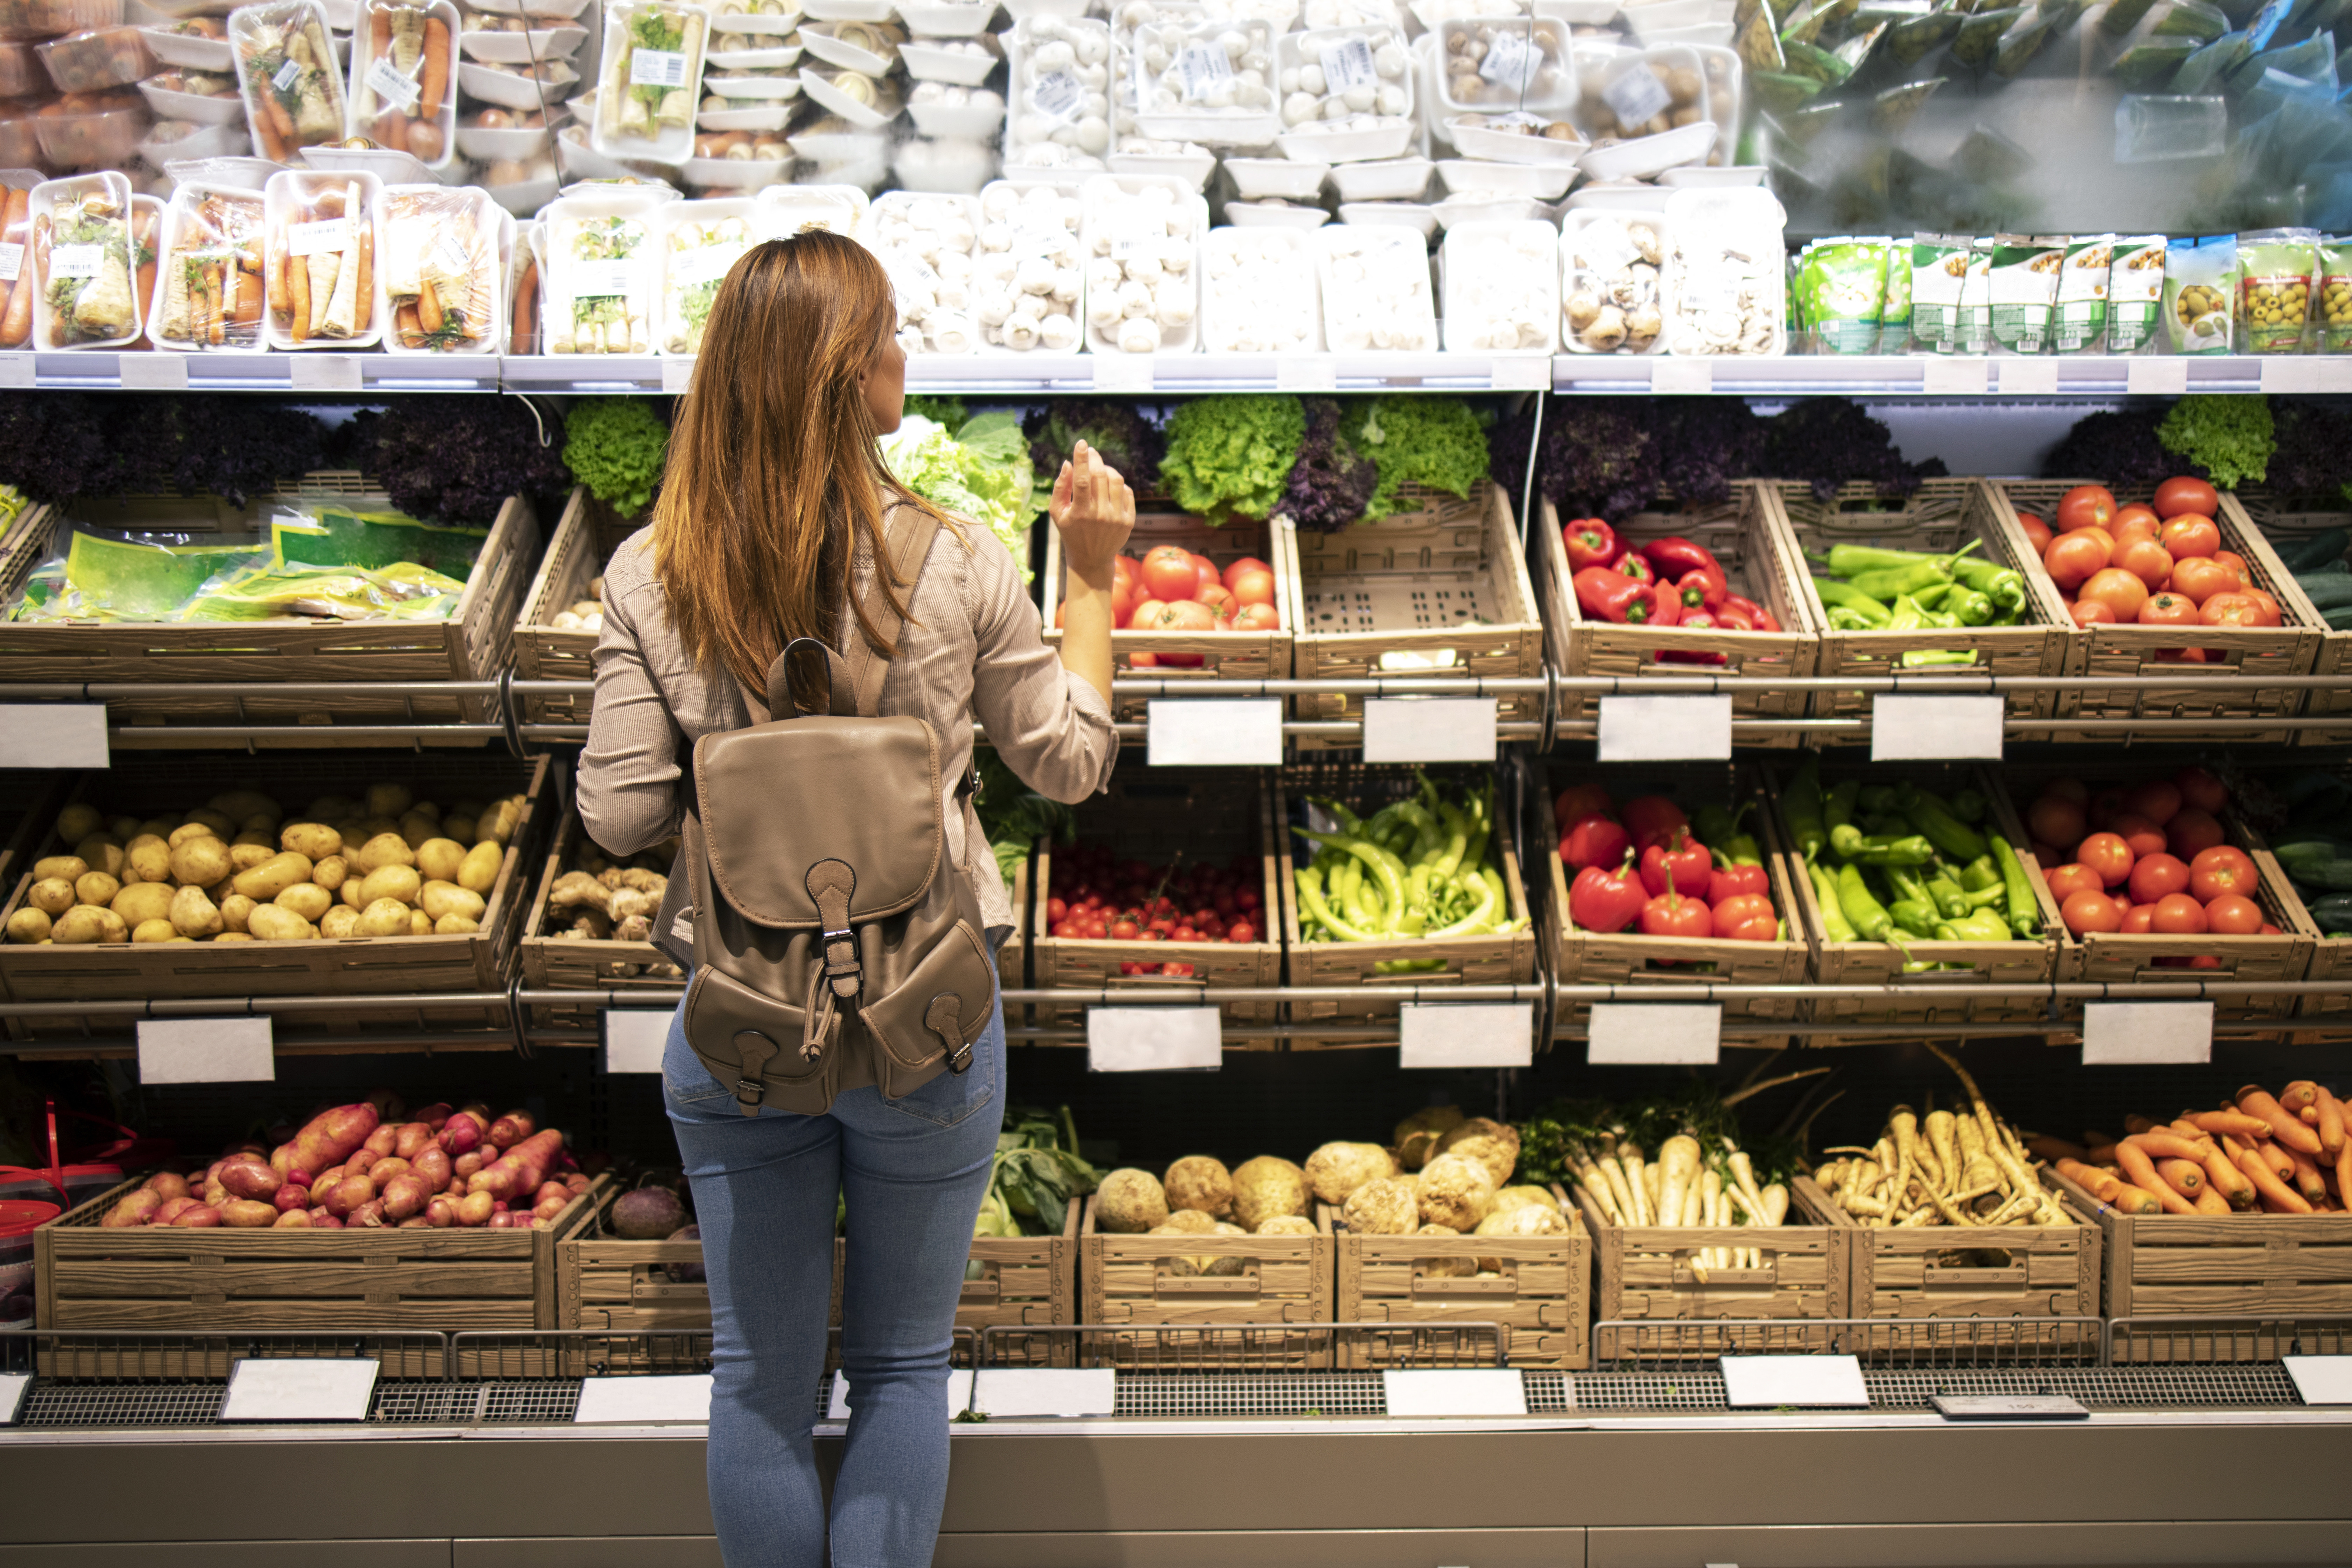 Woman standing in front of vegetable shelves choosing what to buy.